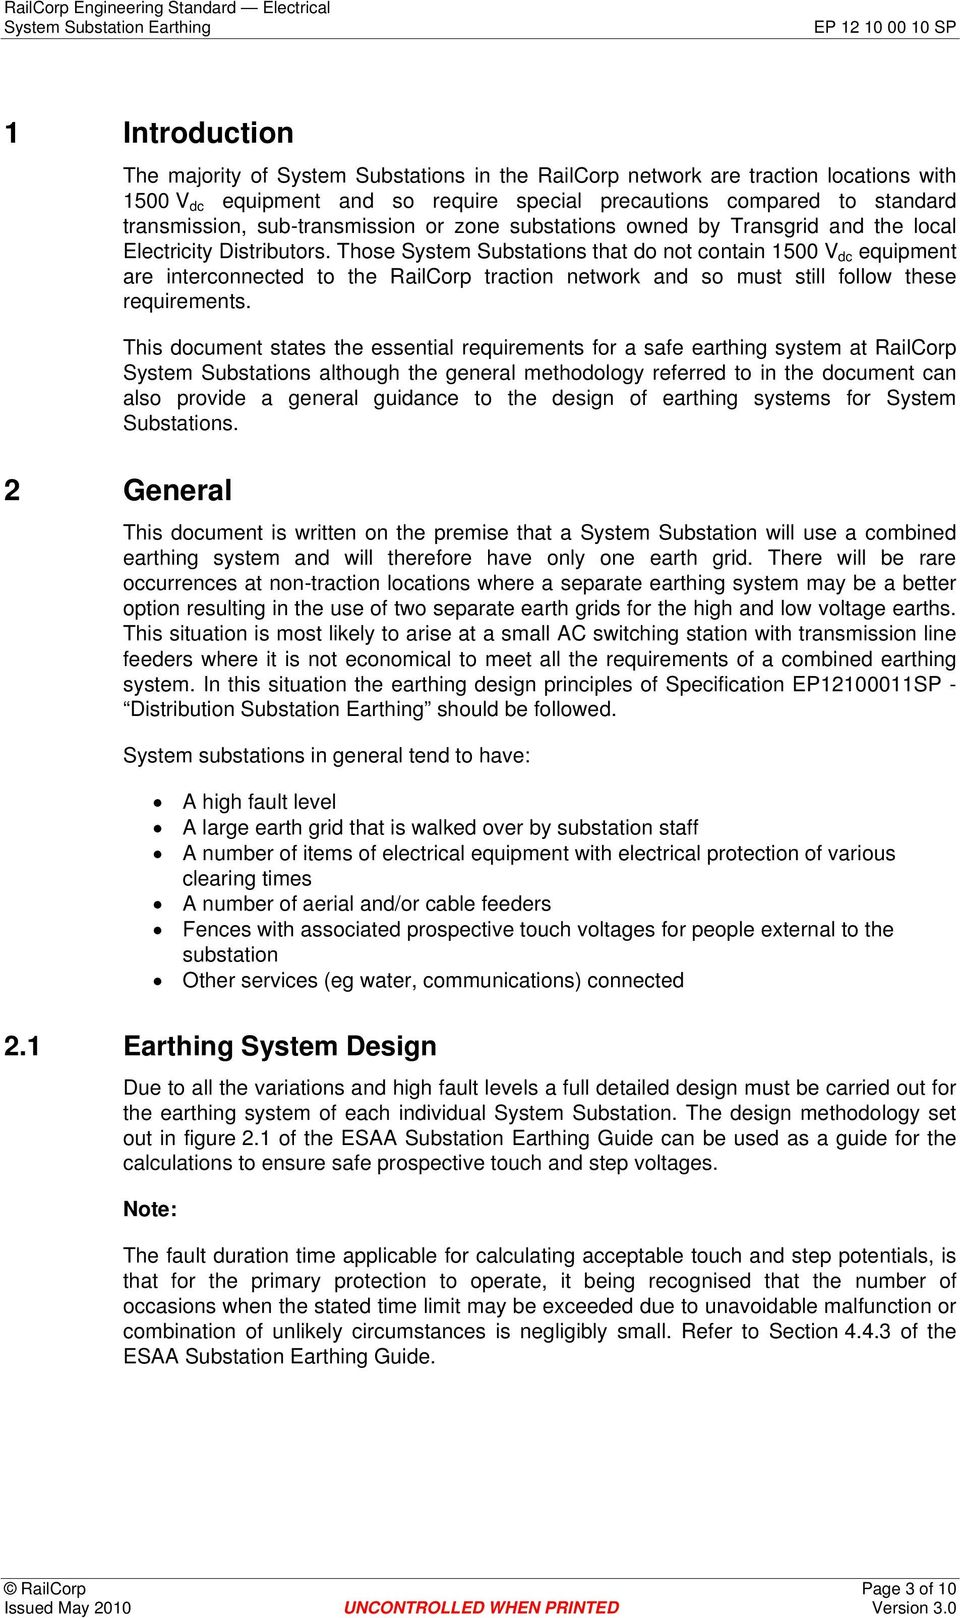 Ep Sp System Substation Earthing Authorised By Wilfred Leung Chief Wiringdiagramoftractionsubstationfordummiesjpg Those Substations That Do Not Contain 1500 V Dc Equipment Are Interconnected To The Railcorp